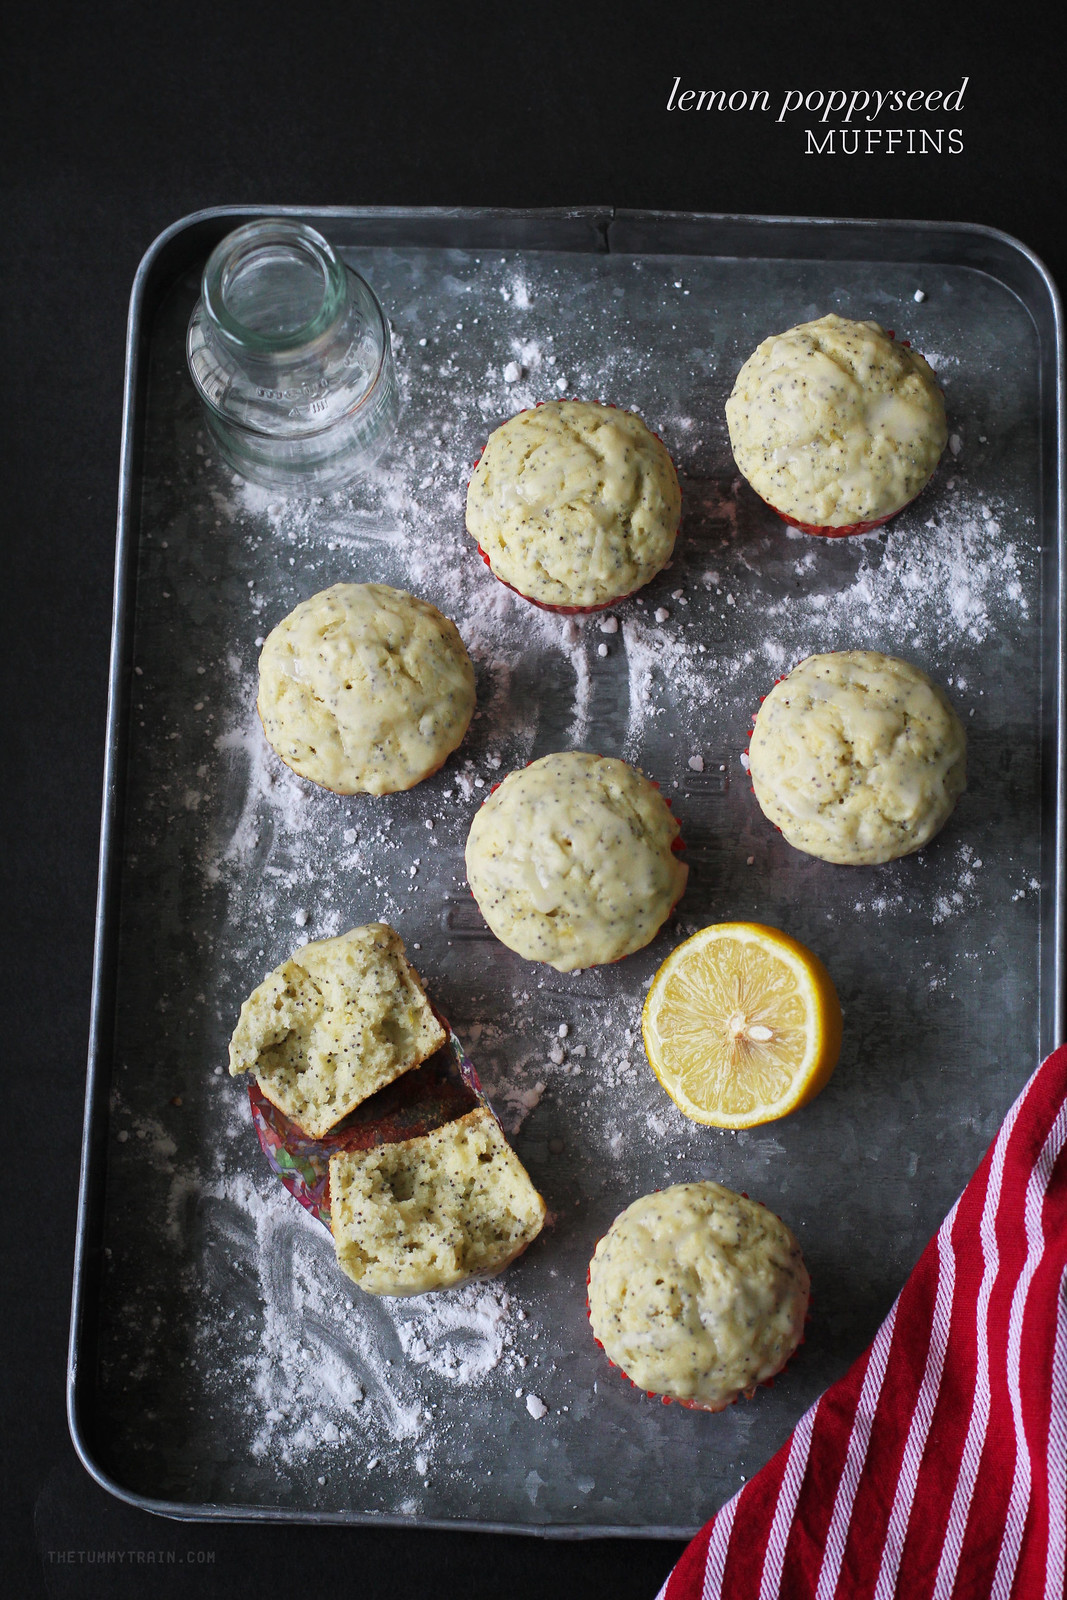 25102532386 bfeba5a440 h - Getting personal with these Lemon Poppyseed Muffins